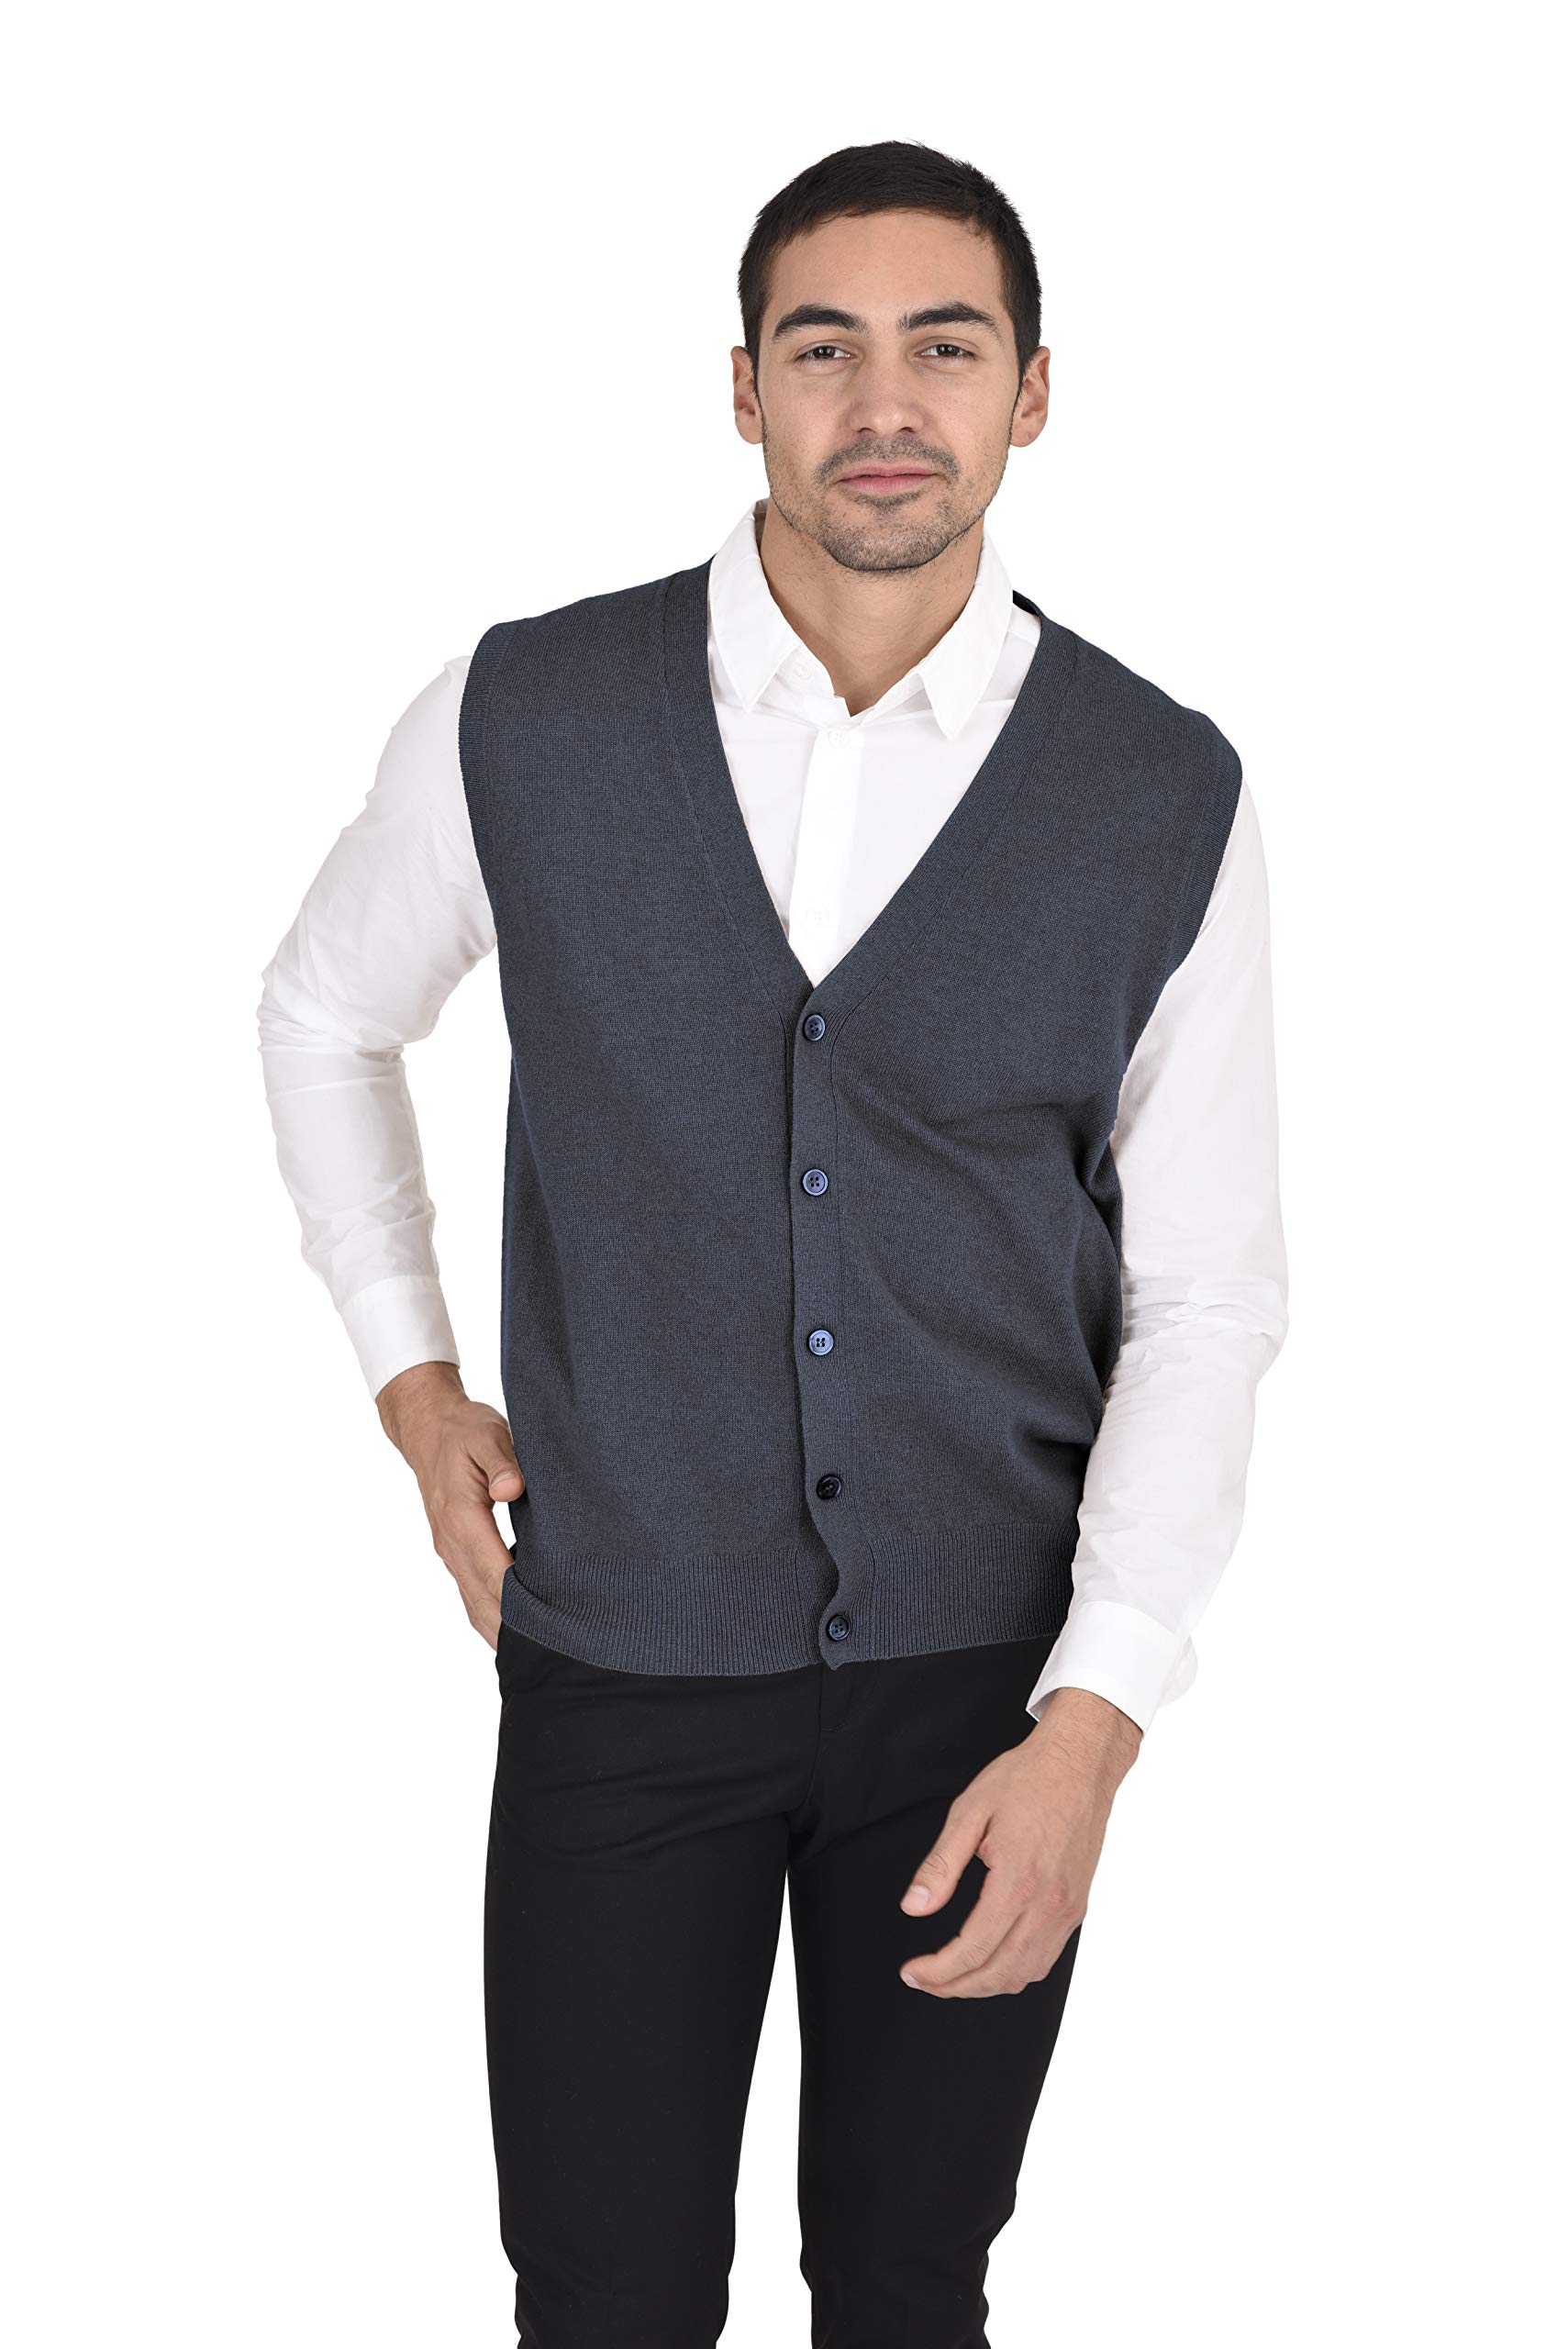 State Cashmere Men's Classic Jersey Knit Button Down Vest 100% Pure Cashmere V-Neck Style Cardigan (Small,Charcoal) by State Cashmere